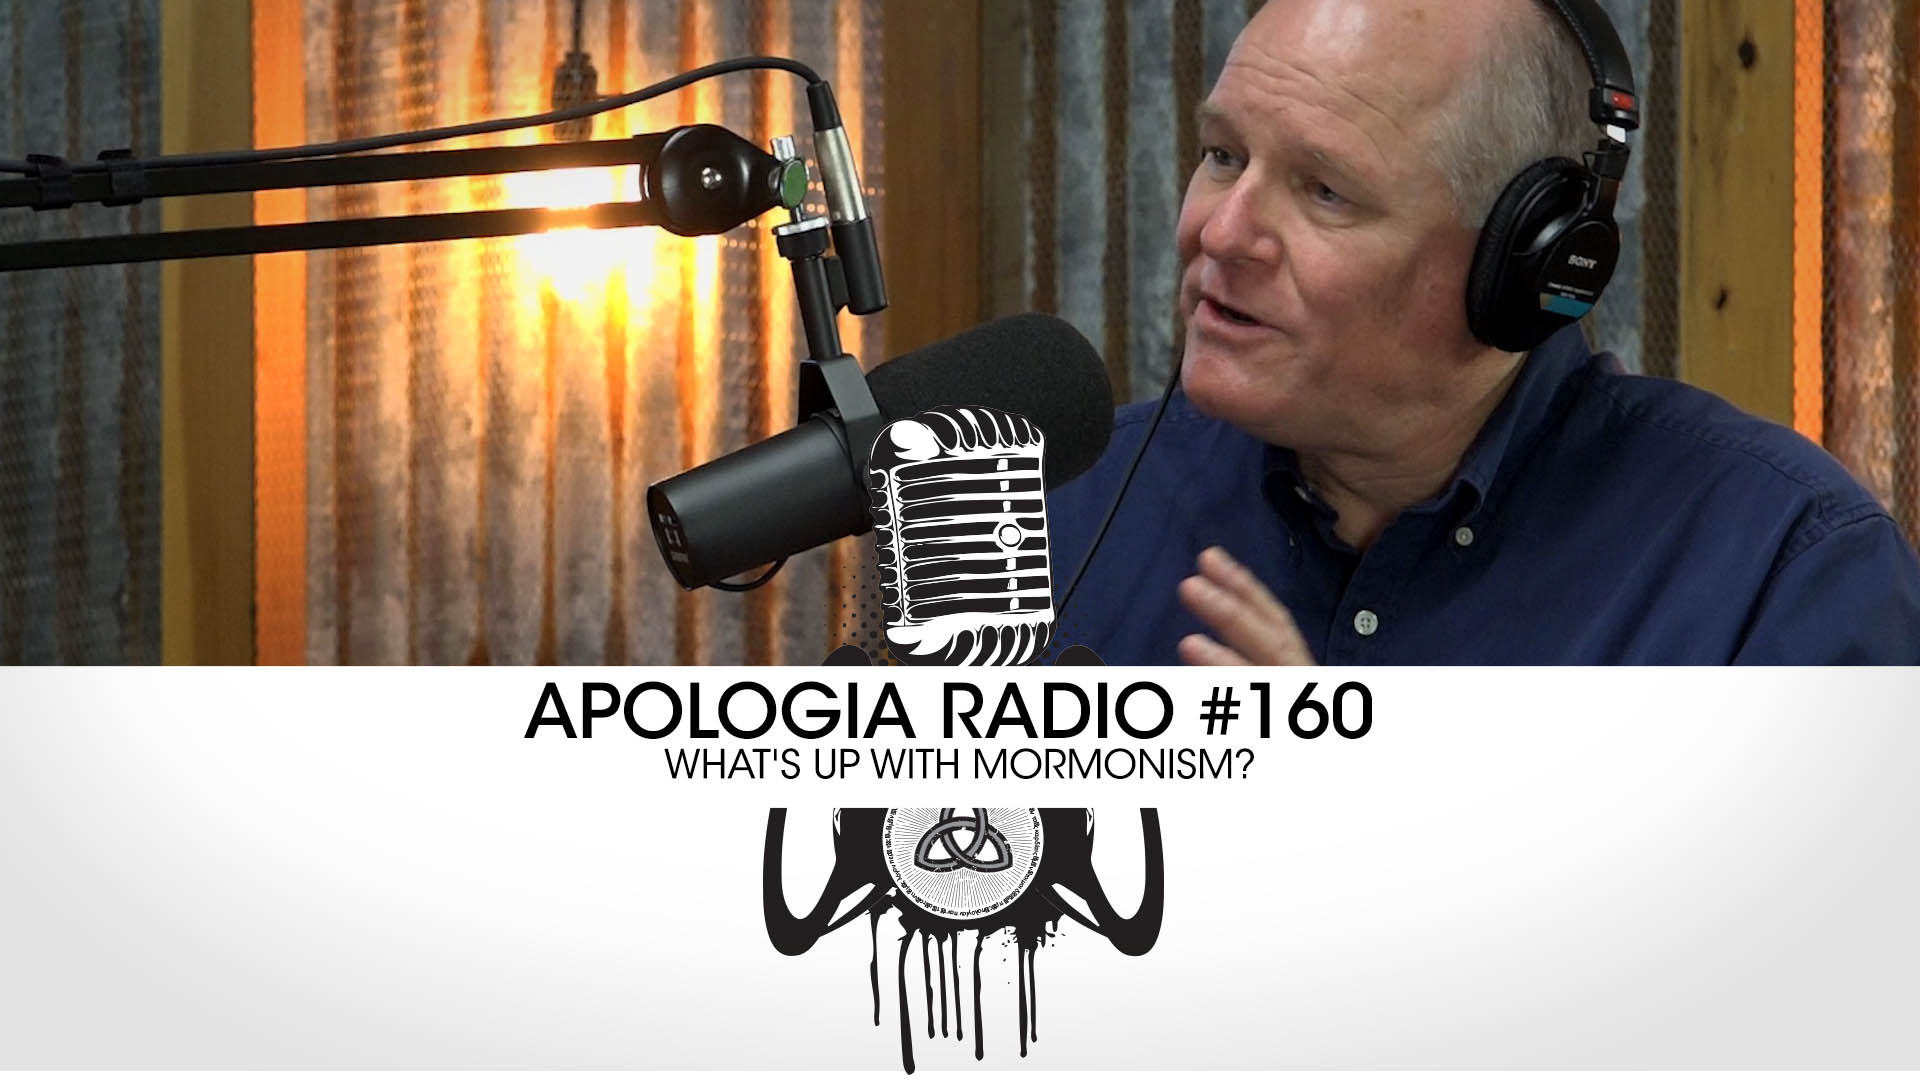 apologia-radio-160-mormonism-bill-mckeever-eric-johnson